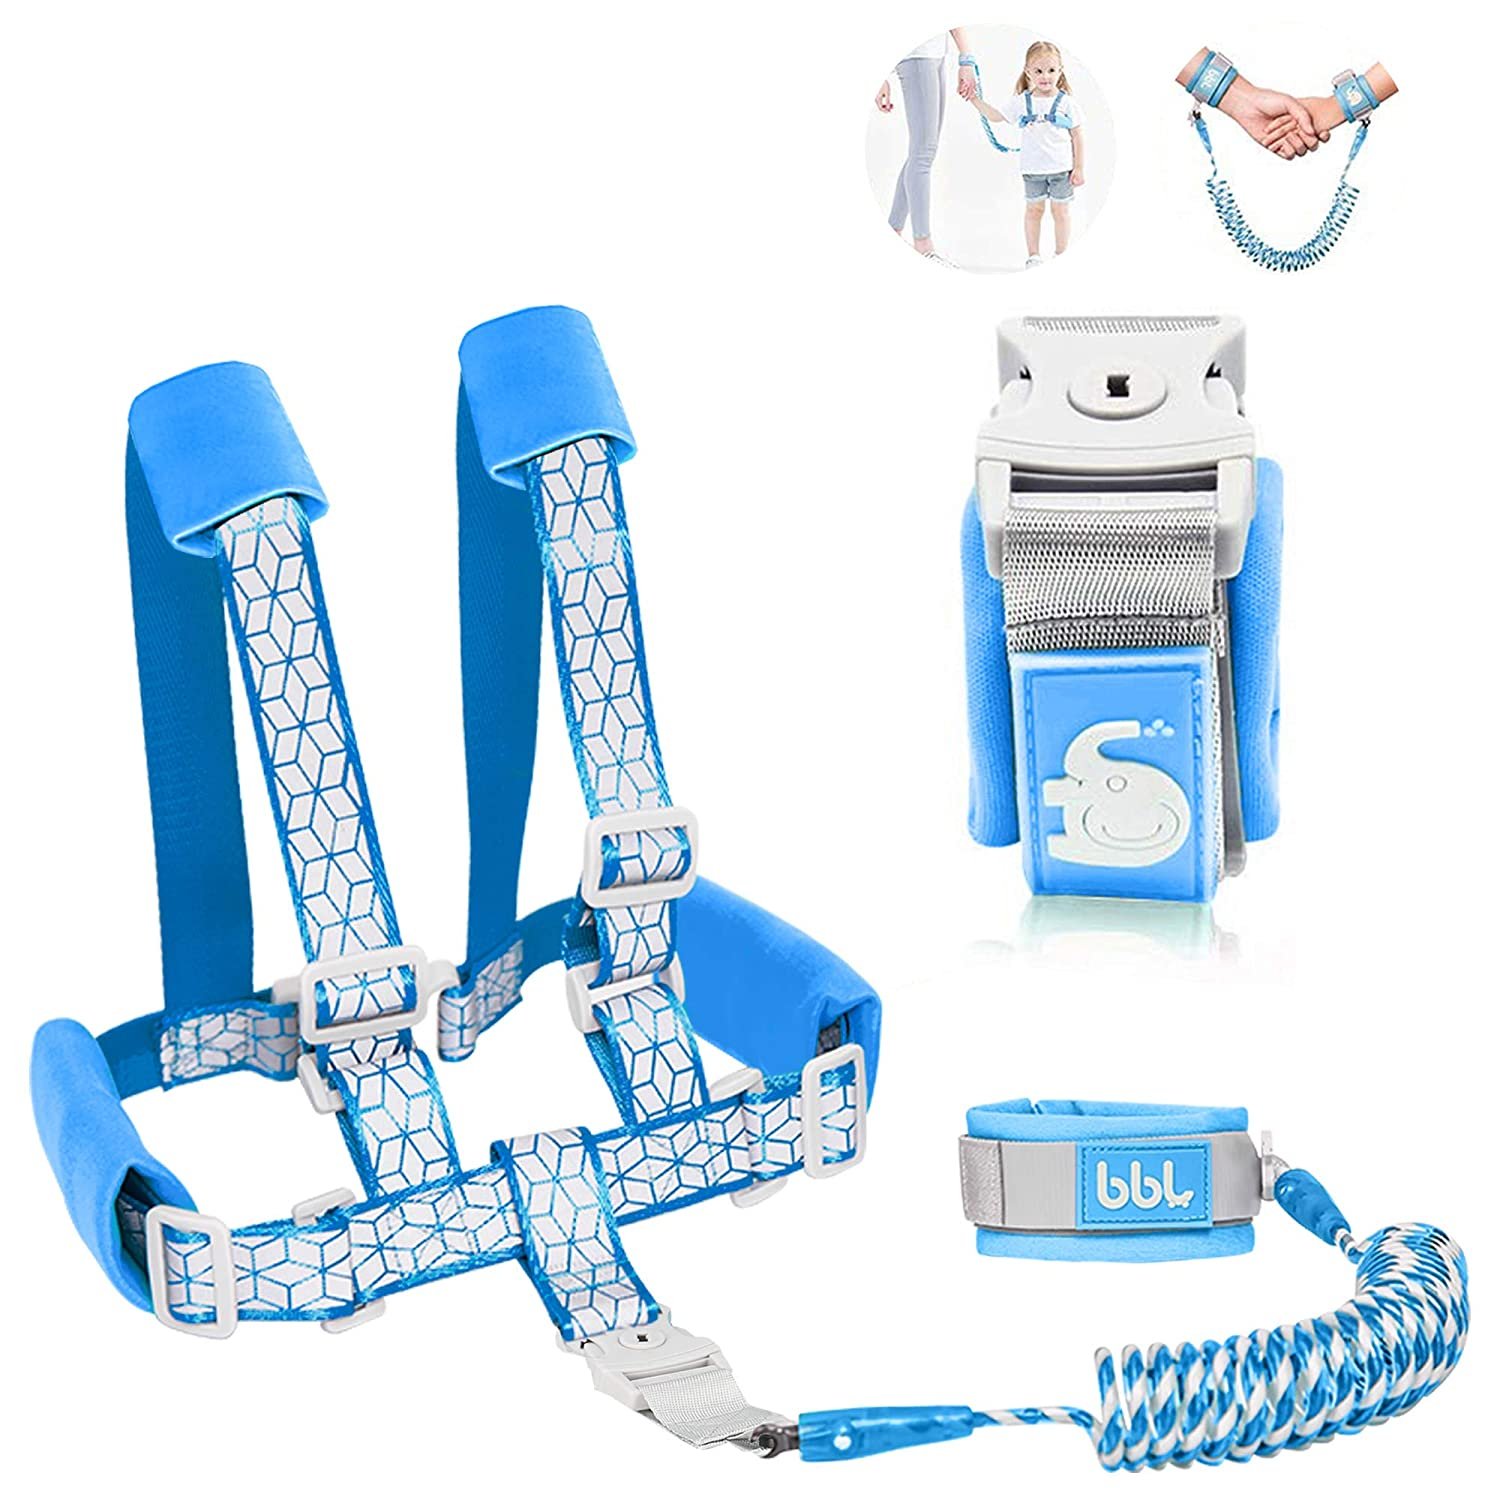 2 in 1 Toddler Leash -Anti Lost Wrist Link for Toddlers -Toddler Harness,Baby Leash,Leash for Toddlers,Wrist Leashes,Child Leashes for Toddlers,Not Easy to Open Without Key